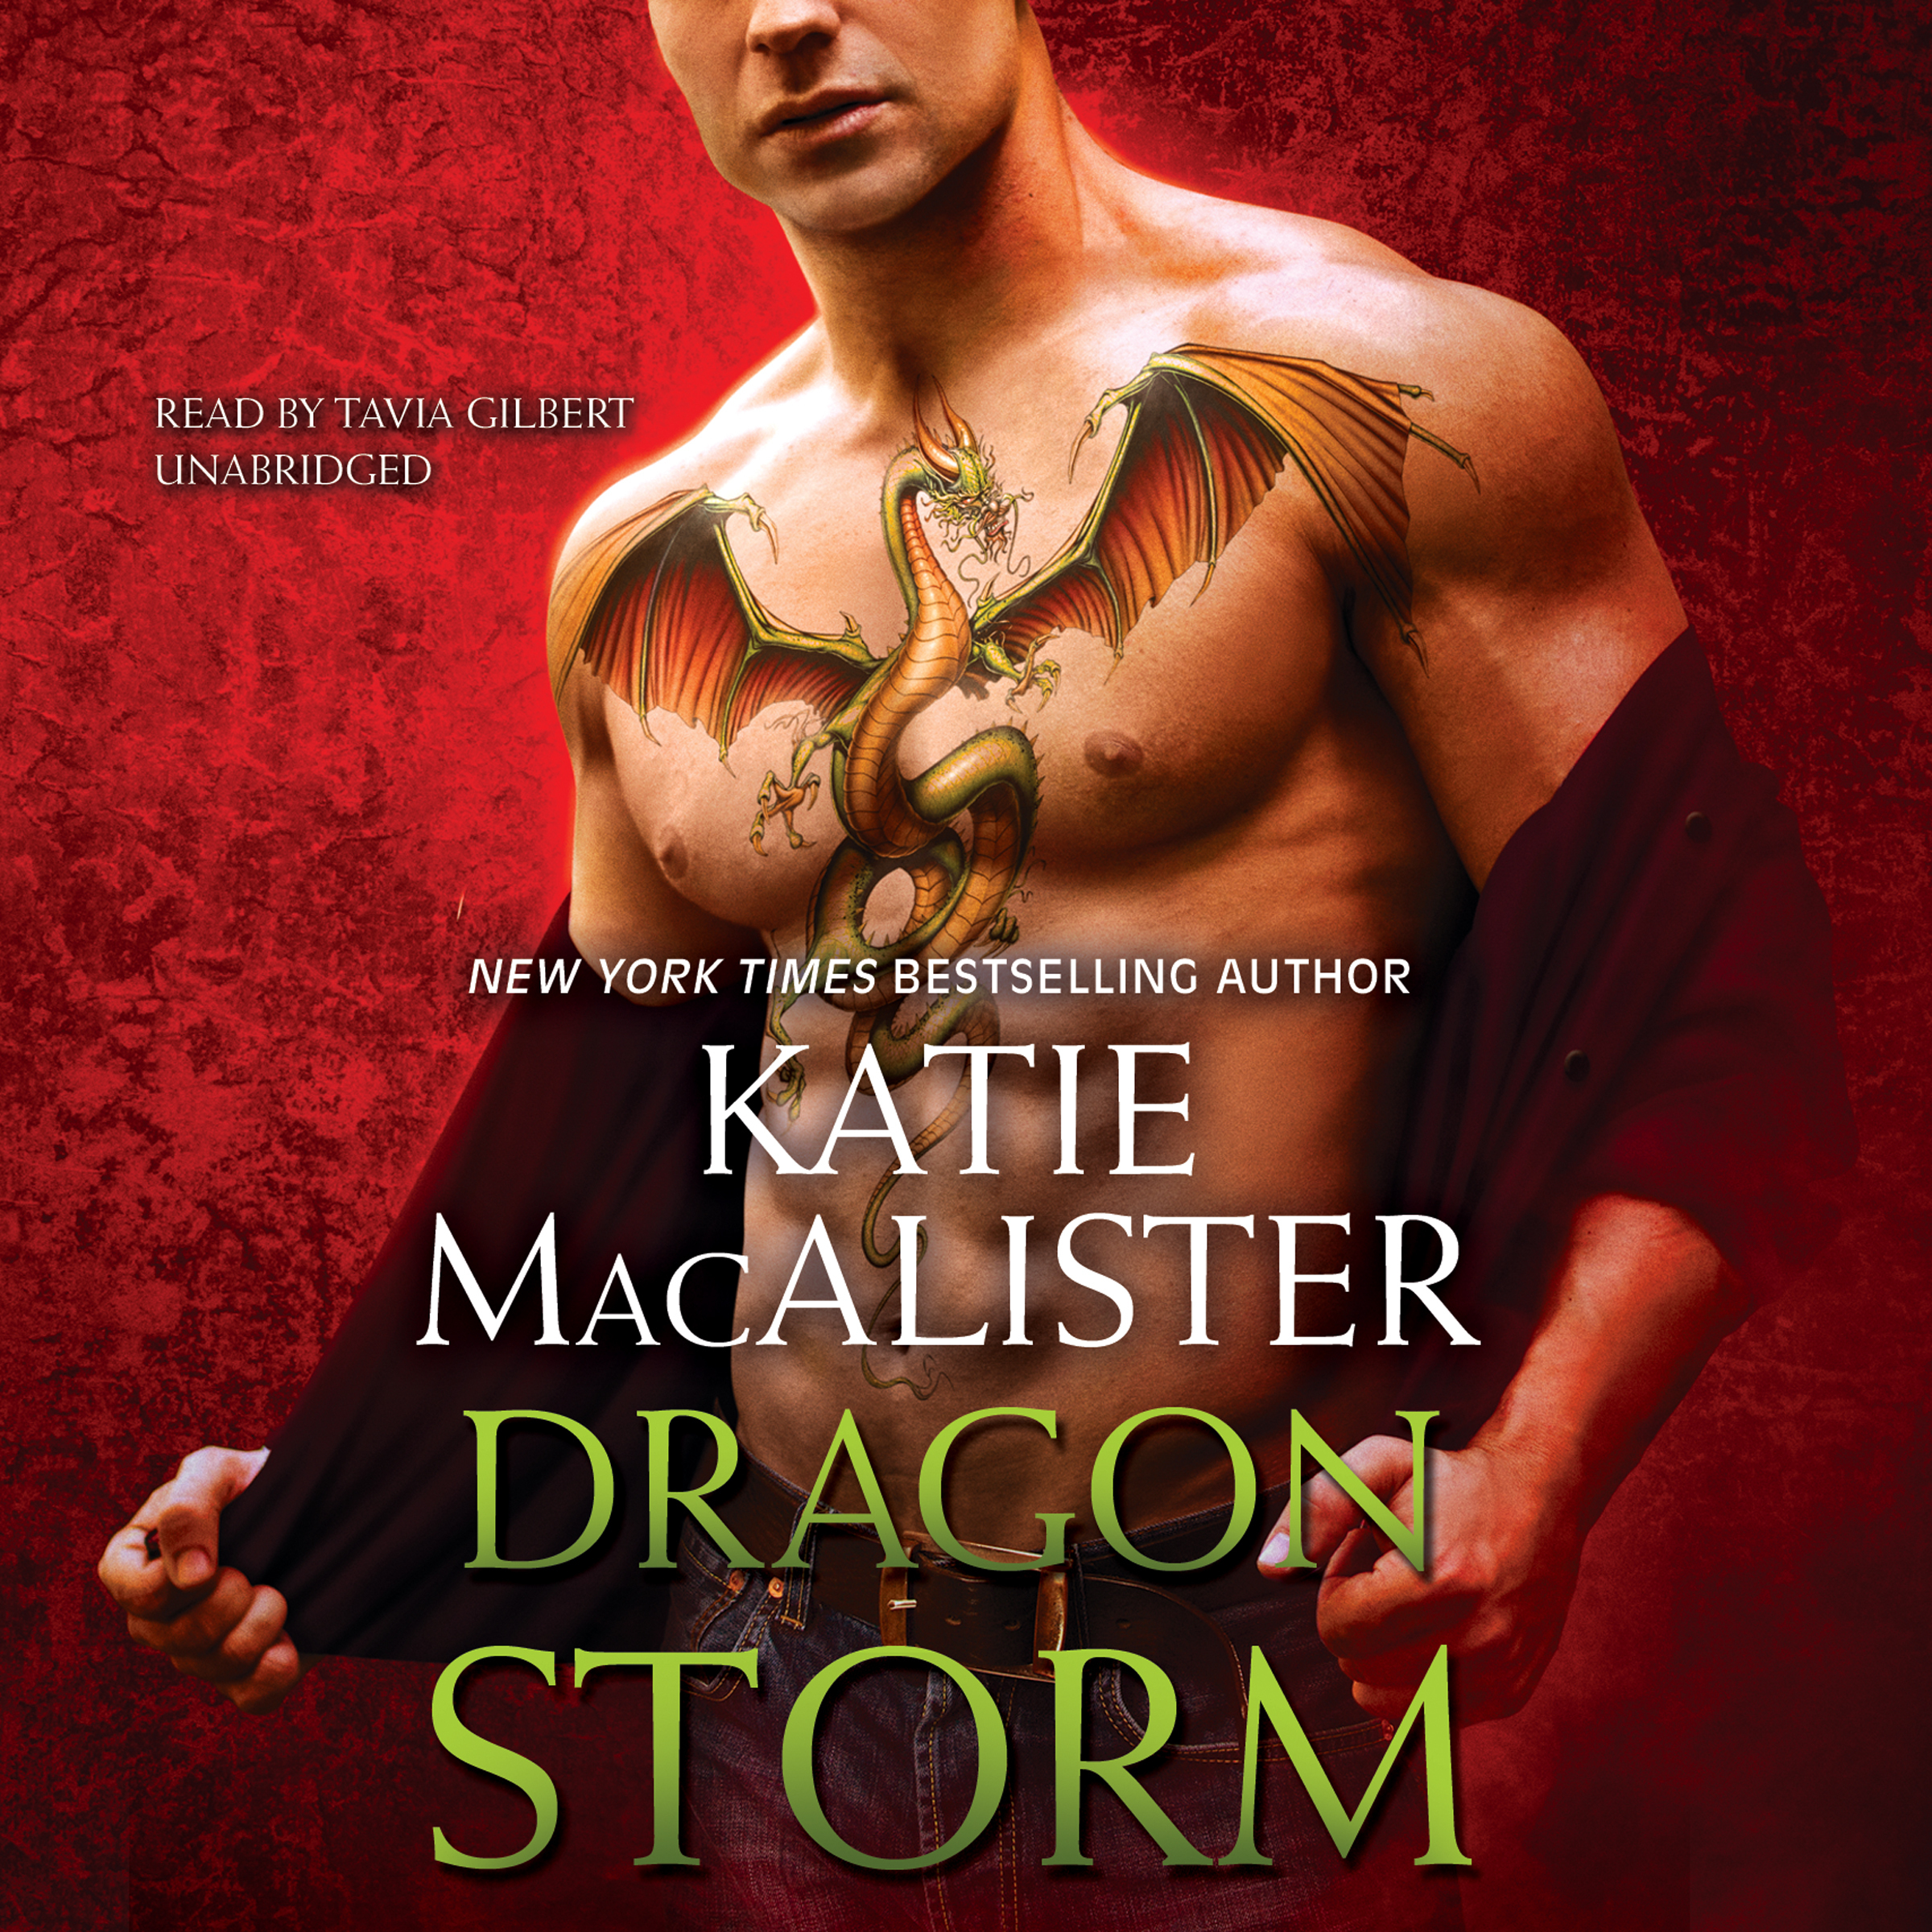 Printable Dragon Storm Audiobook Cover Art